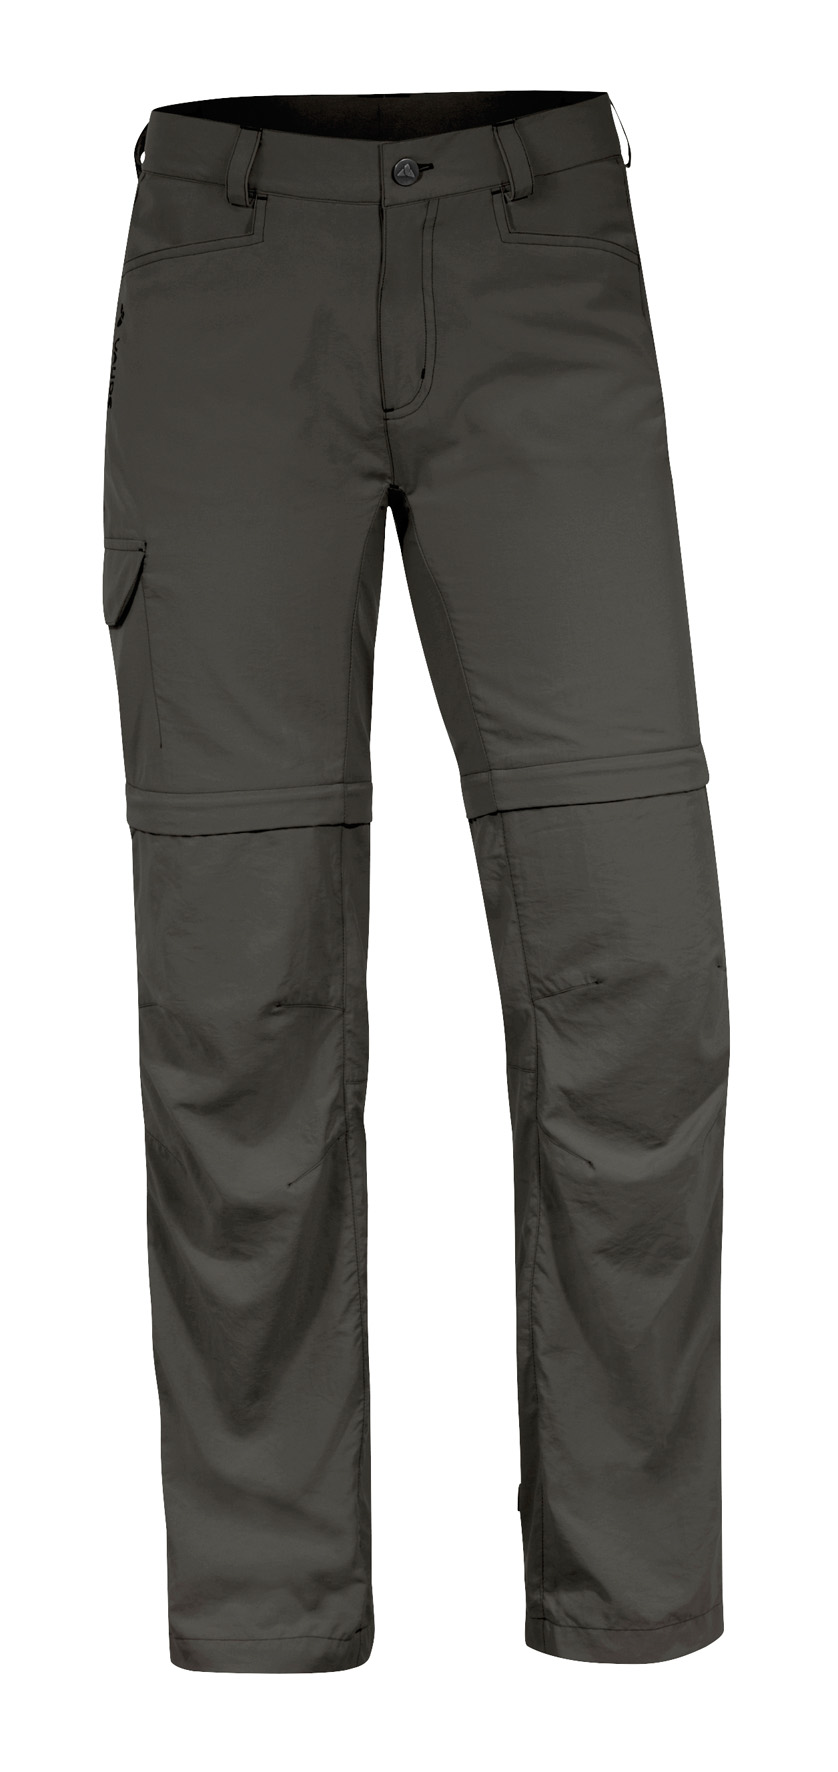 Women´s Lauca ZO Pants fir green Größe 38 - schneider-sports